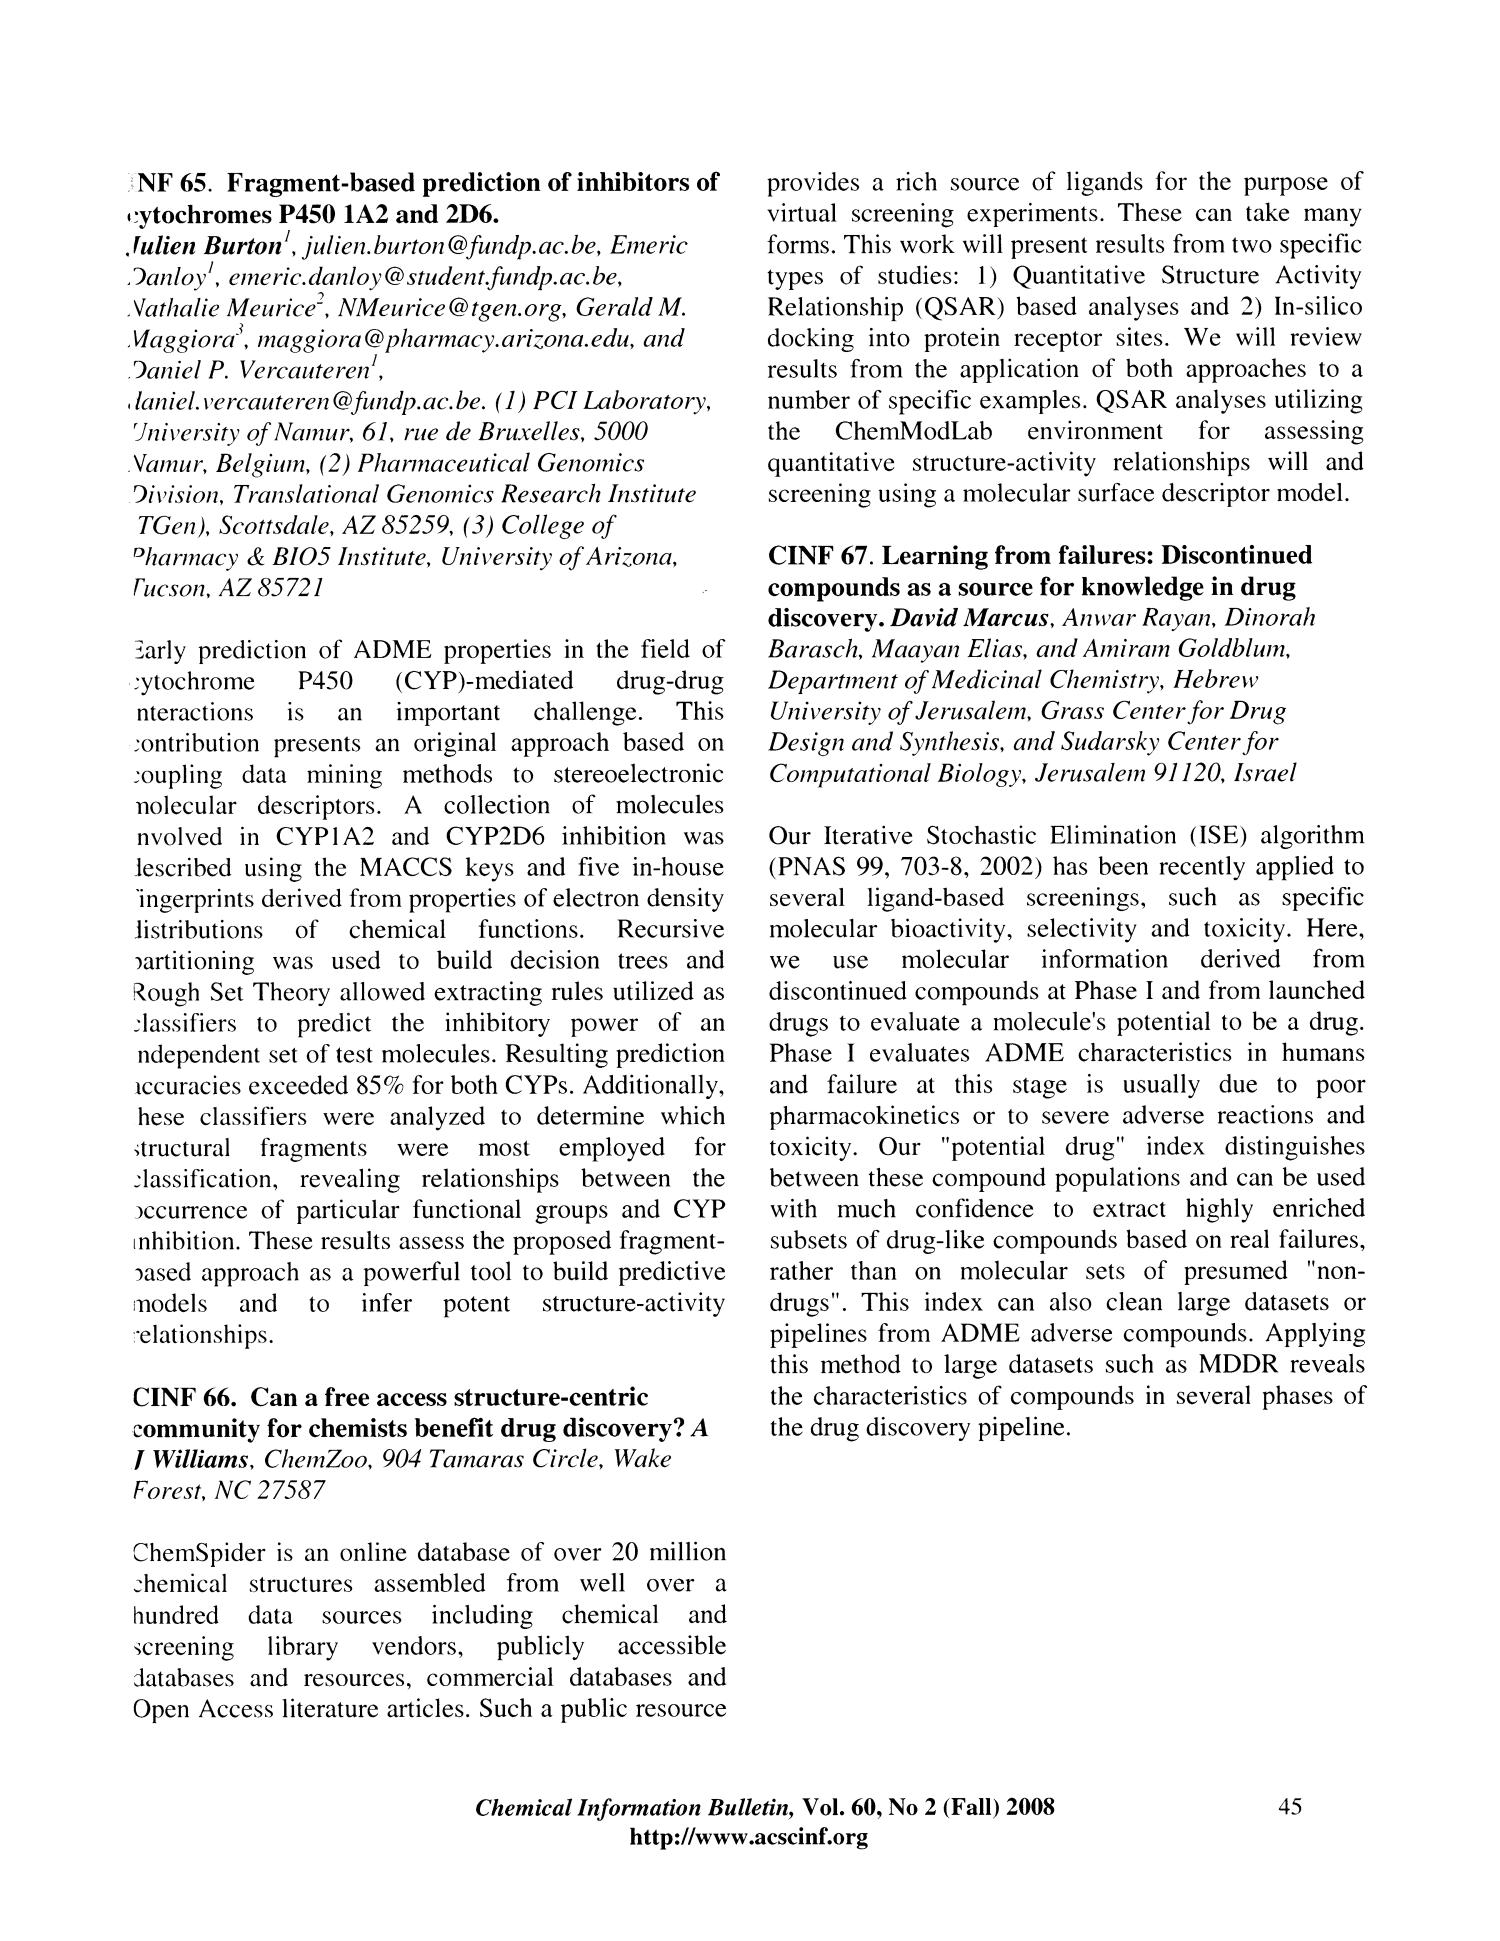 Chemical Information Bulletin, Volume 60, Number 2, Fall 2008 - Page